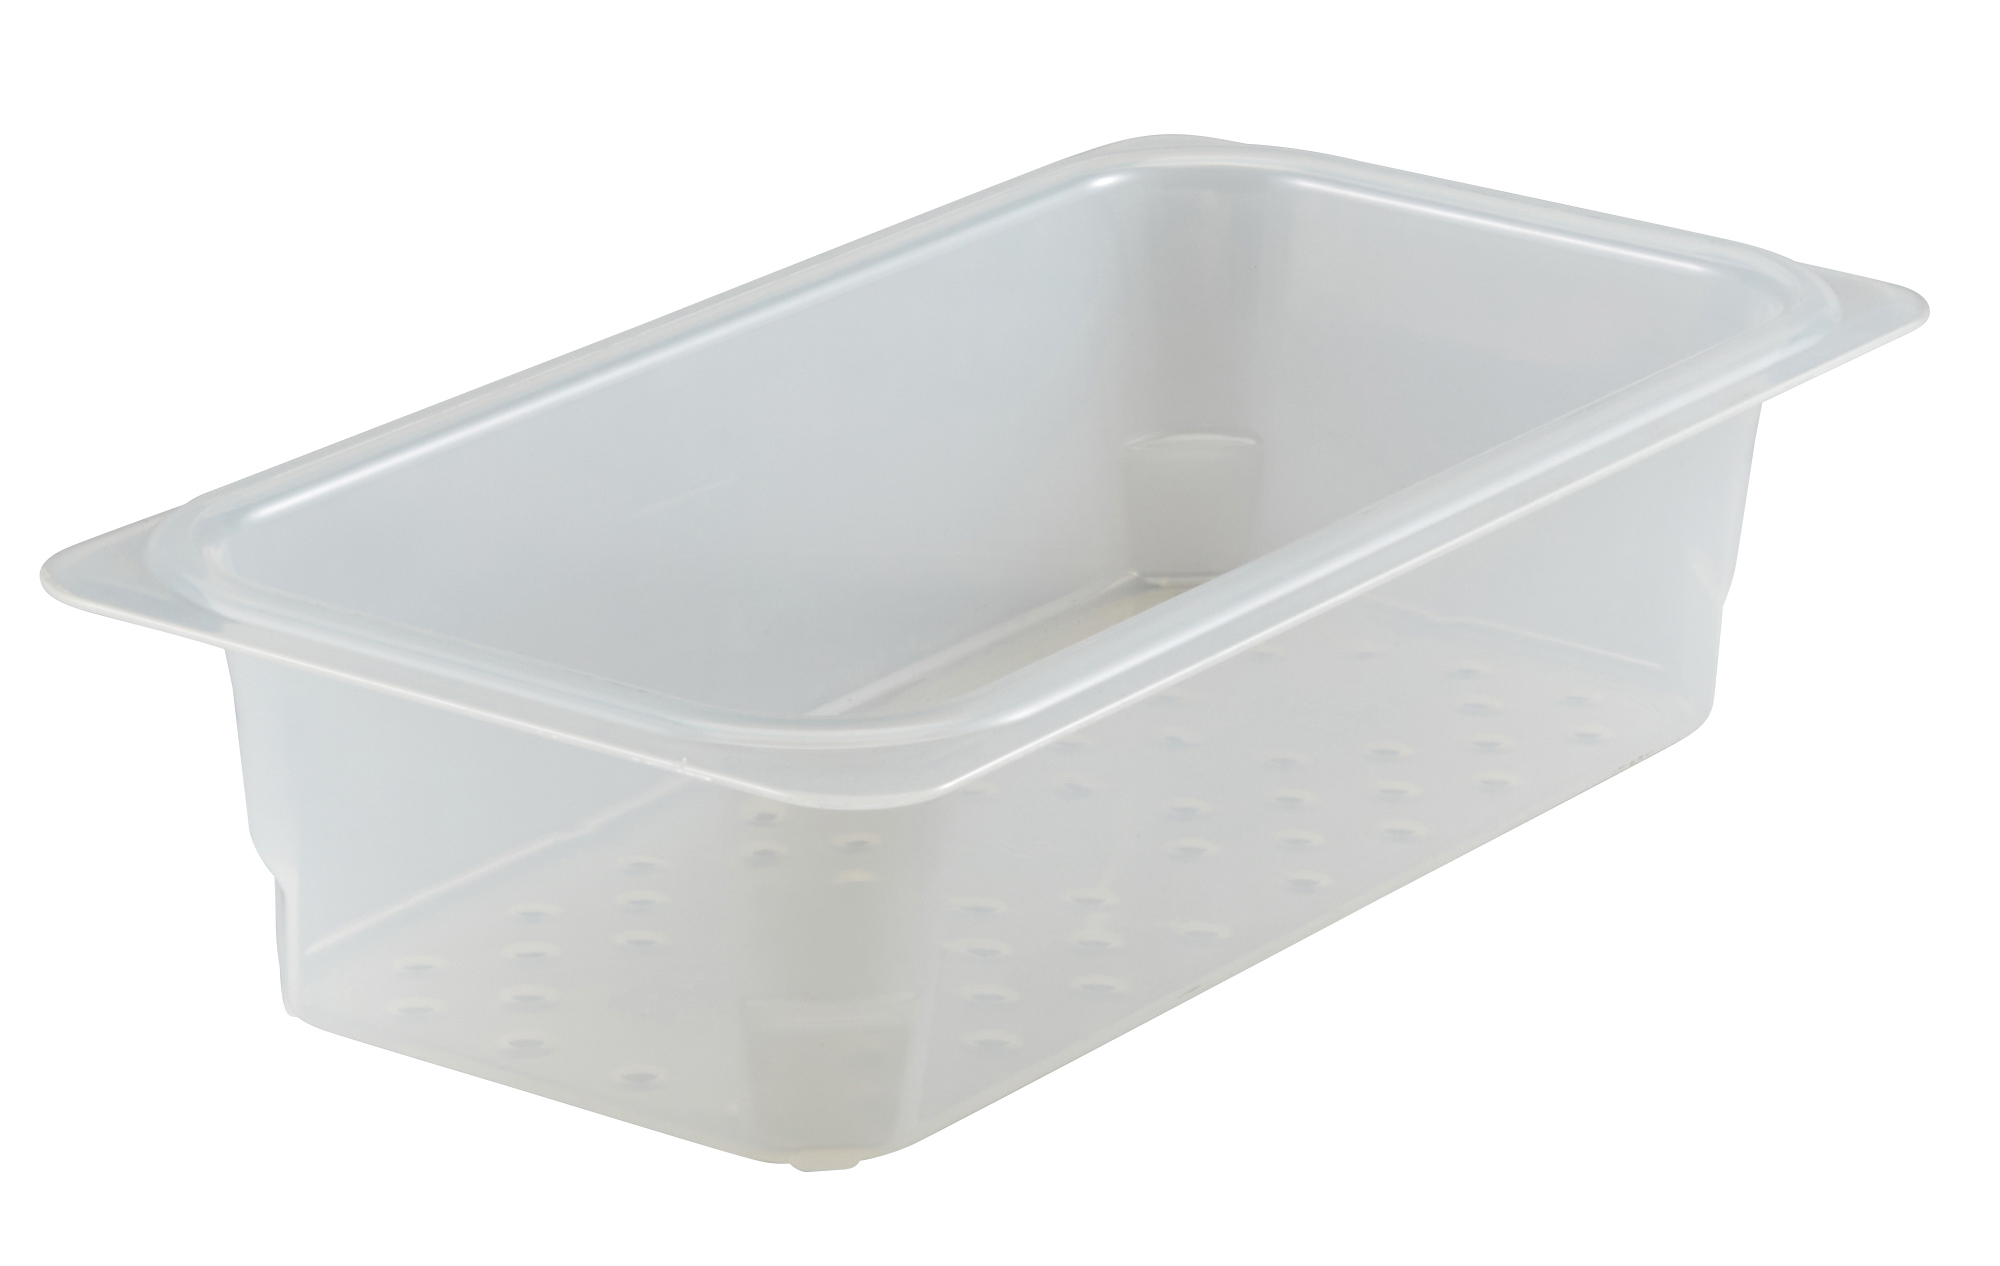 Cambro 33CLRPP190 food/beverage storage container